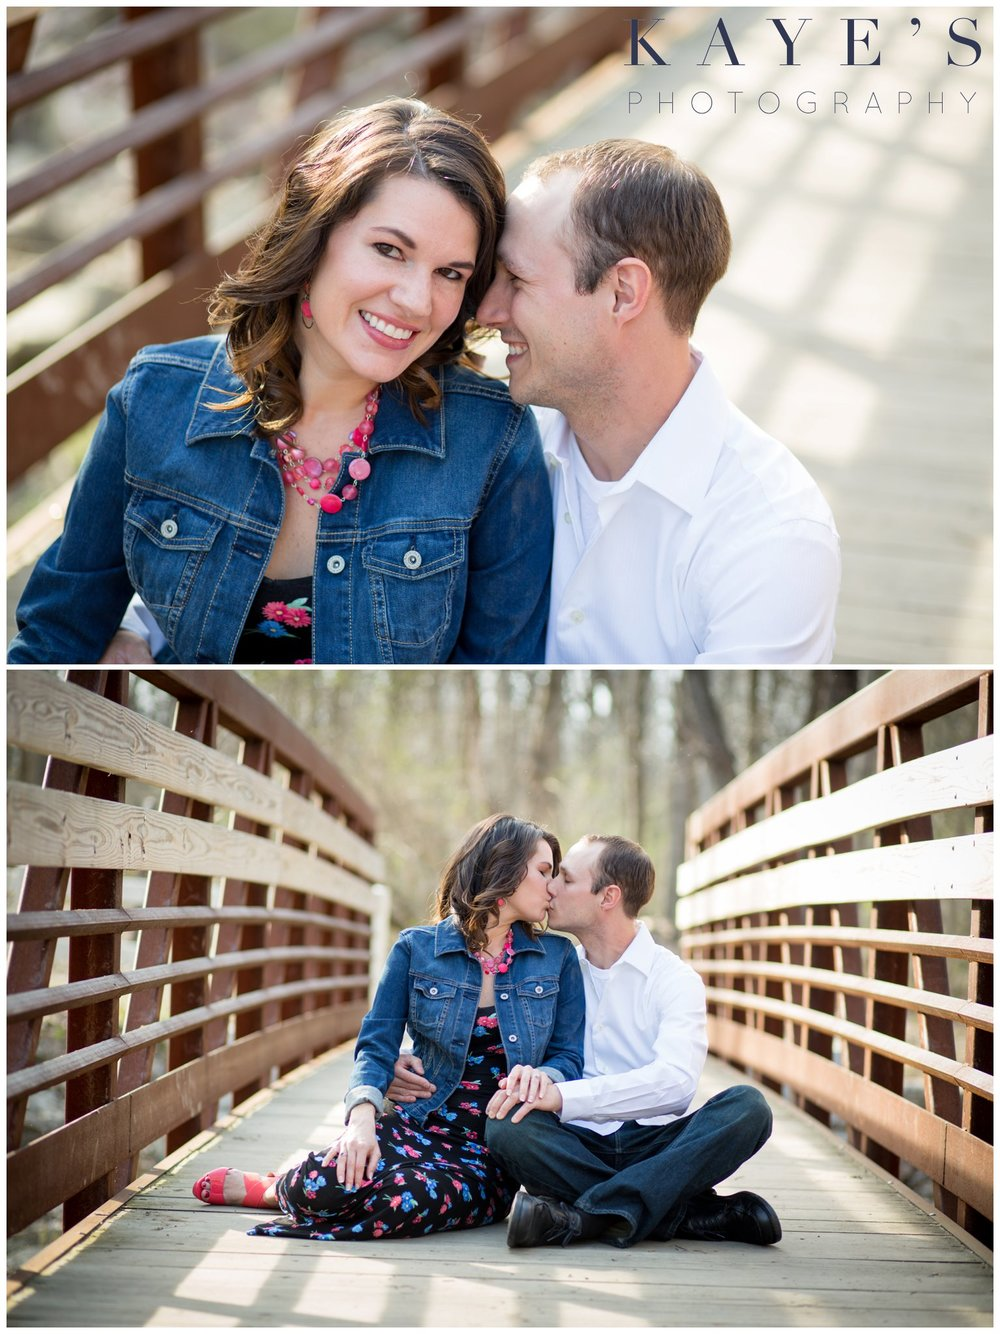 Holly Michigan wedding photography, holly michigan wedding photographer, holly michigan engagement photography, engagement photo, outdoor engagement portraits, portrait photographer, marriage photography, engagement portraits, kissing, couple hugging, couple on bridge